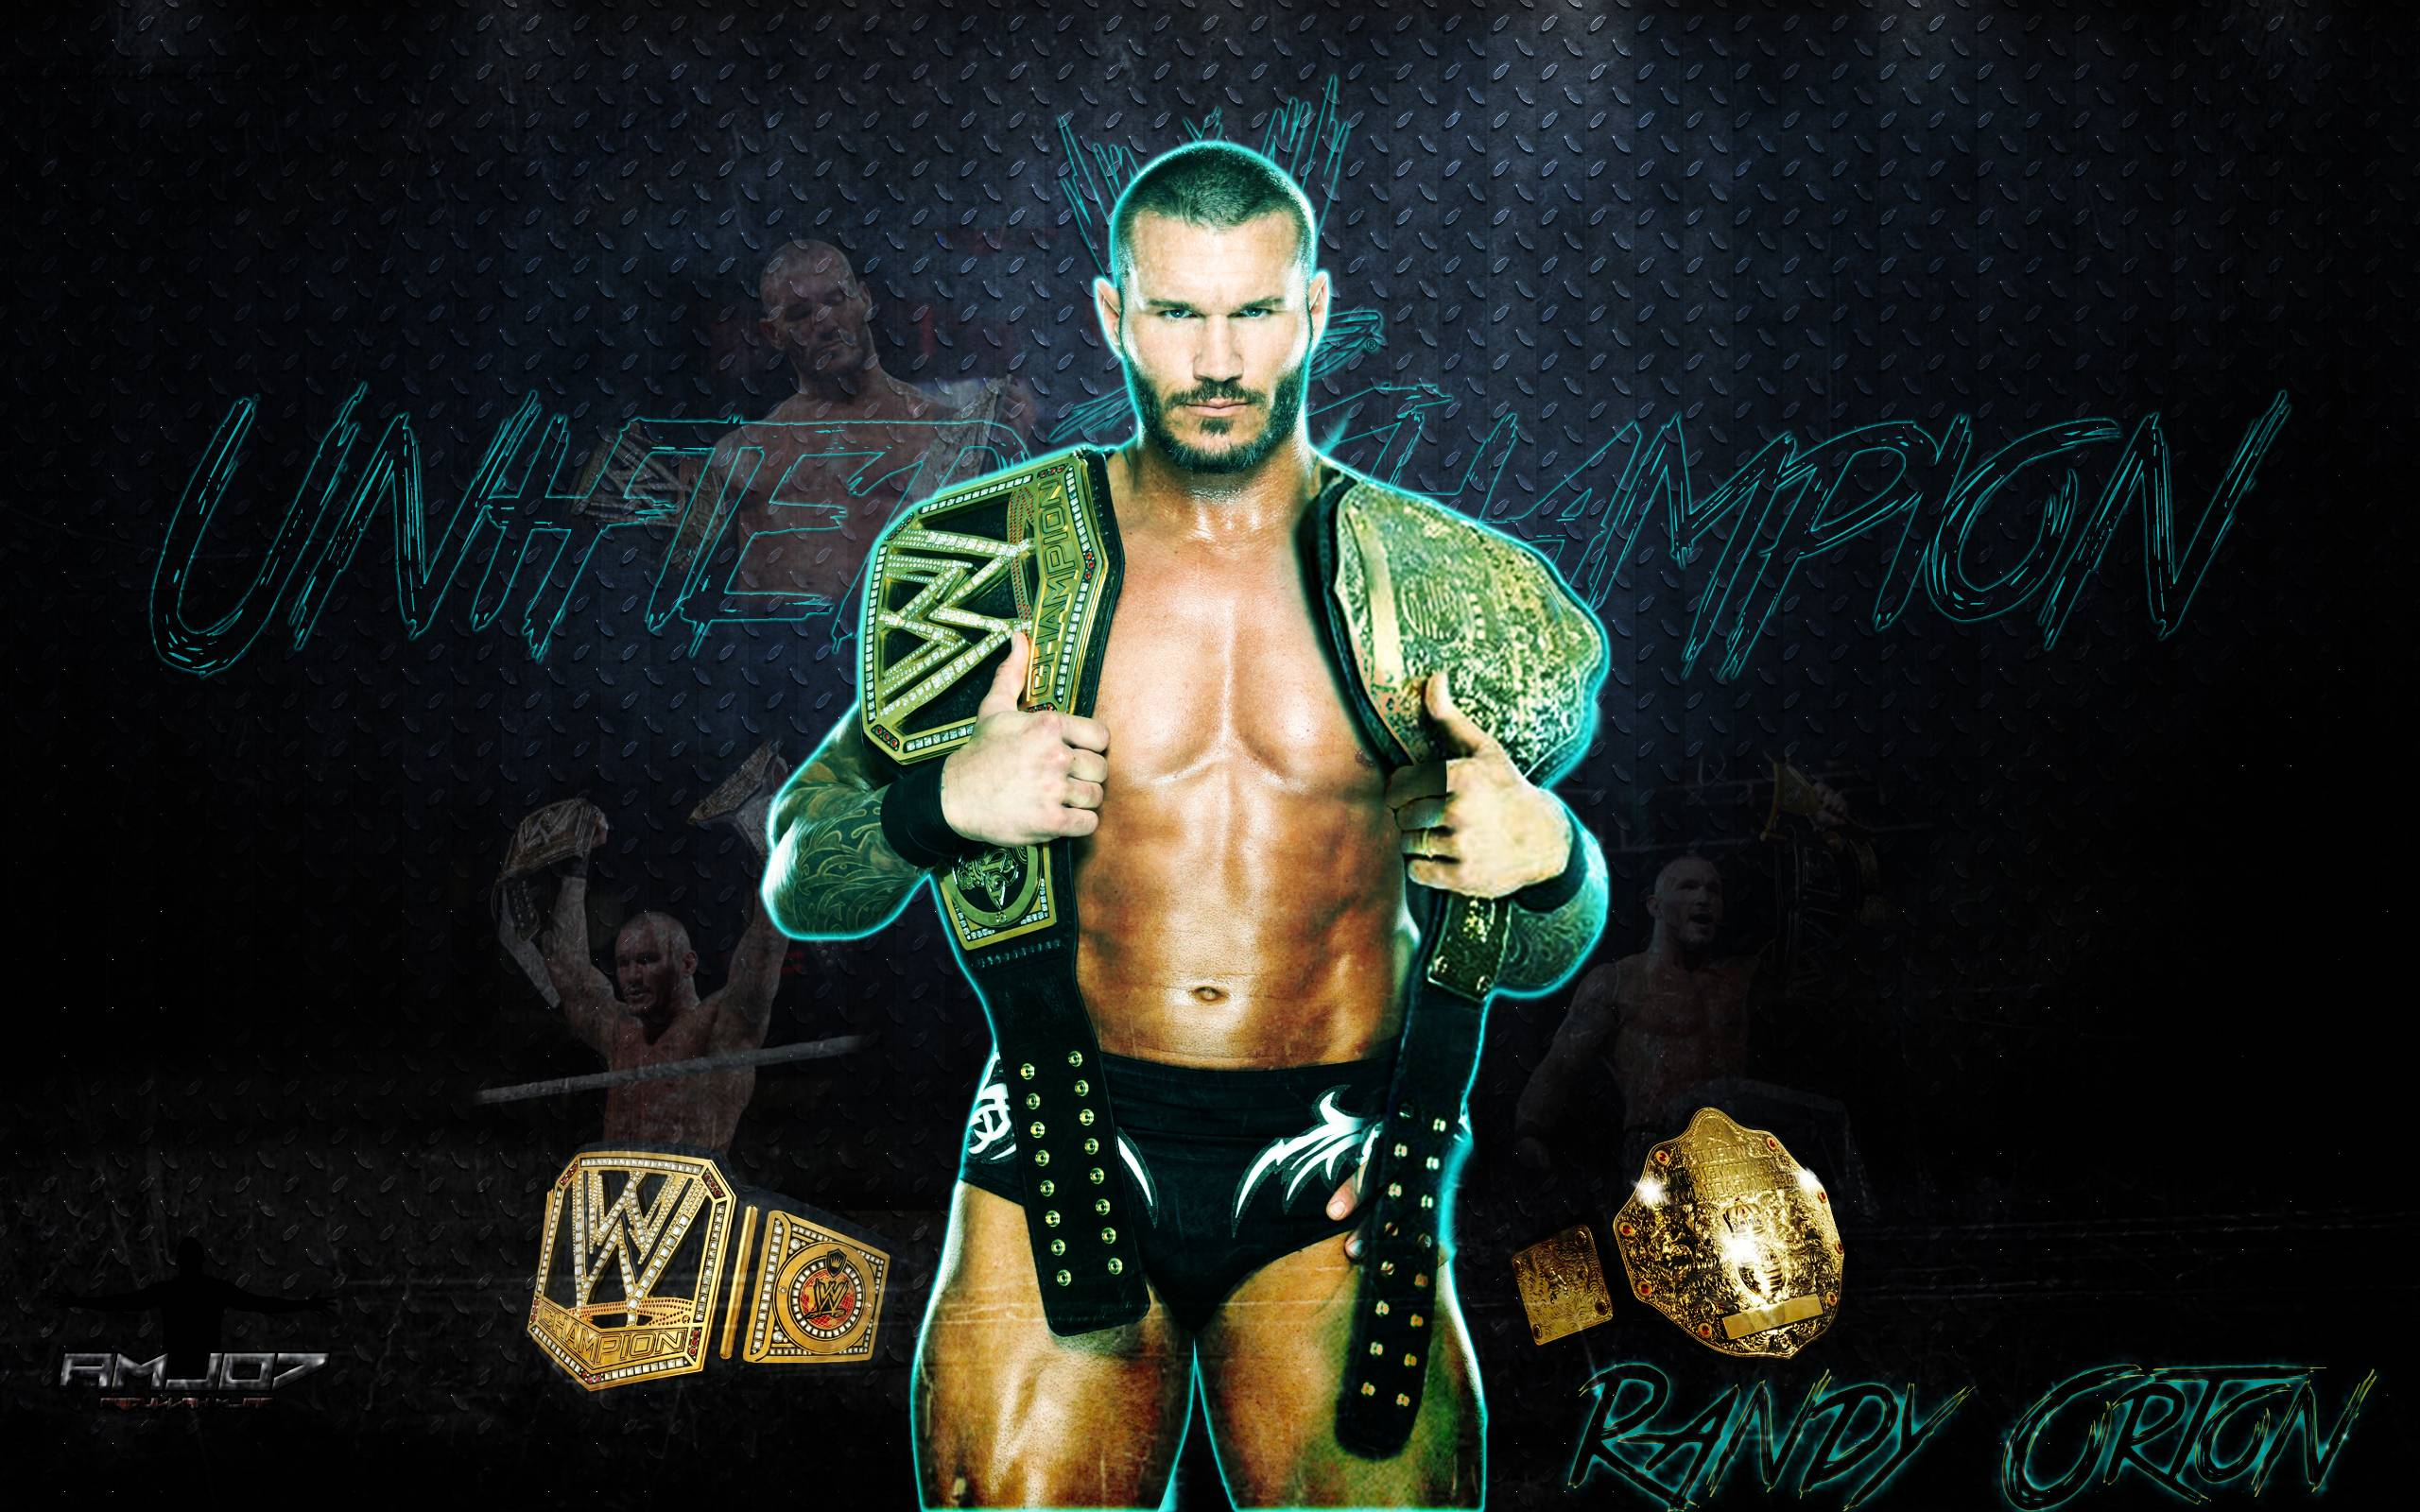 Randy Orton Wallpaper 92890 | STOREJPG